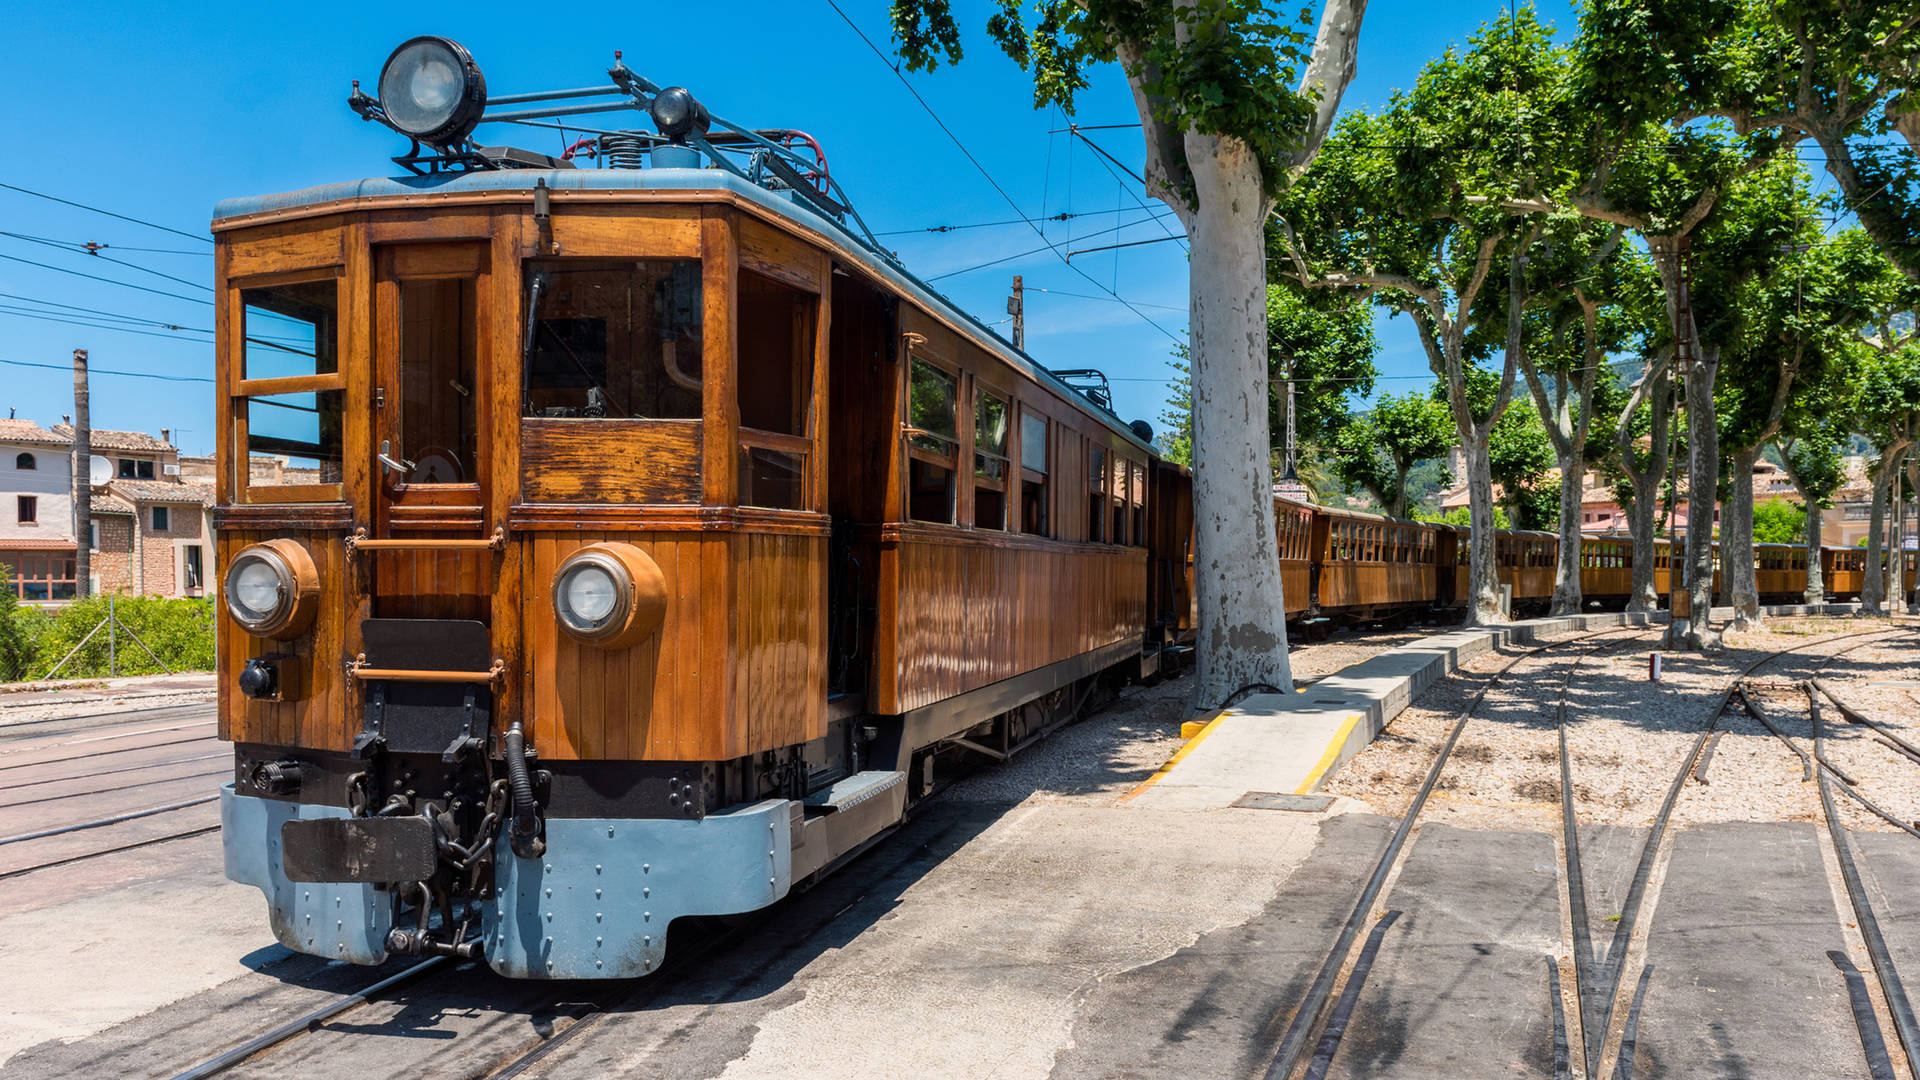 Old train in Soller, Mallorca